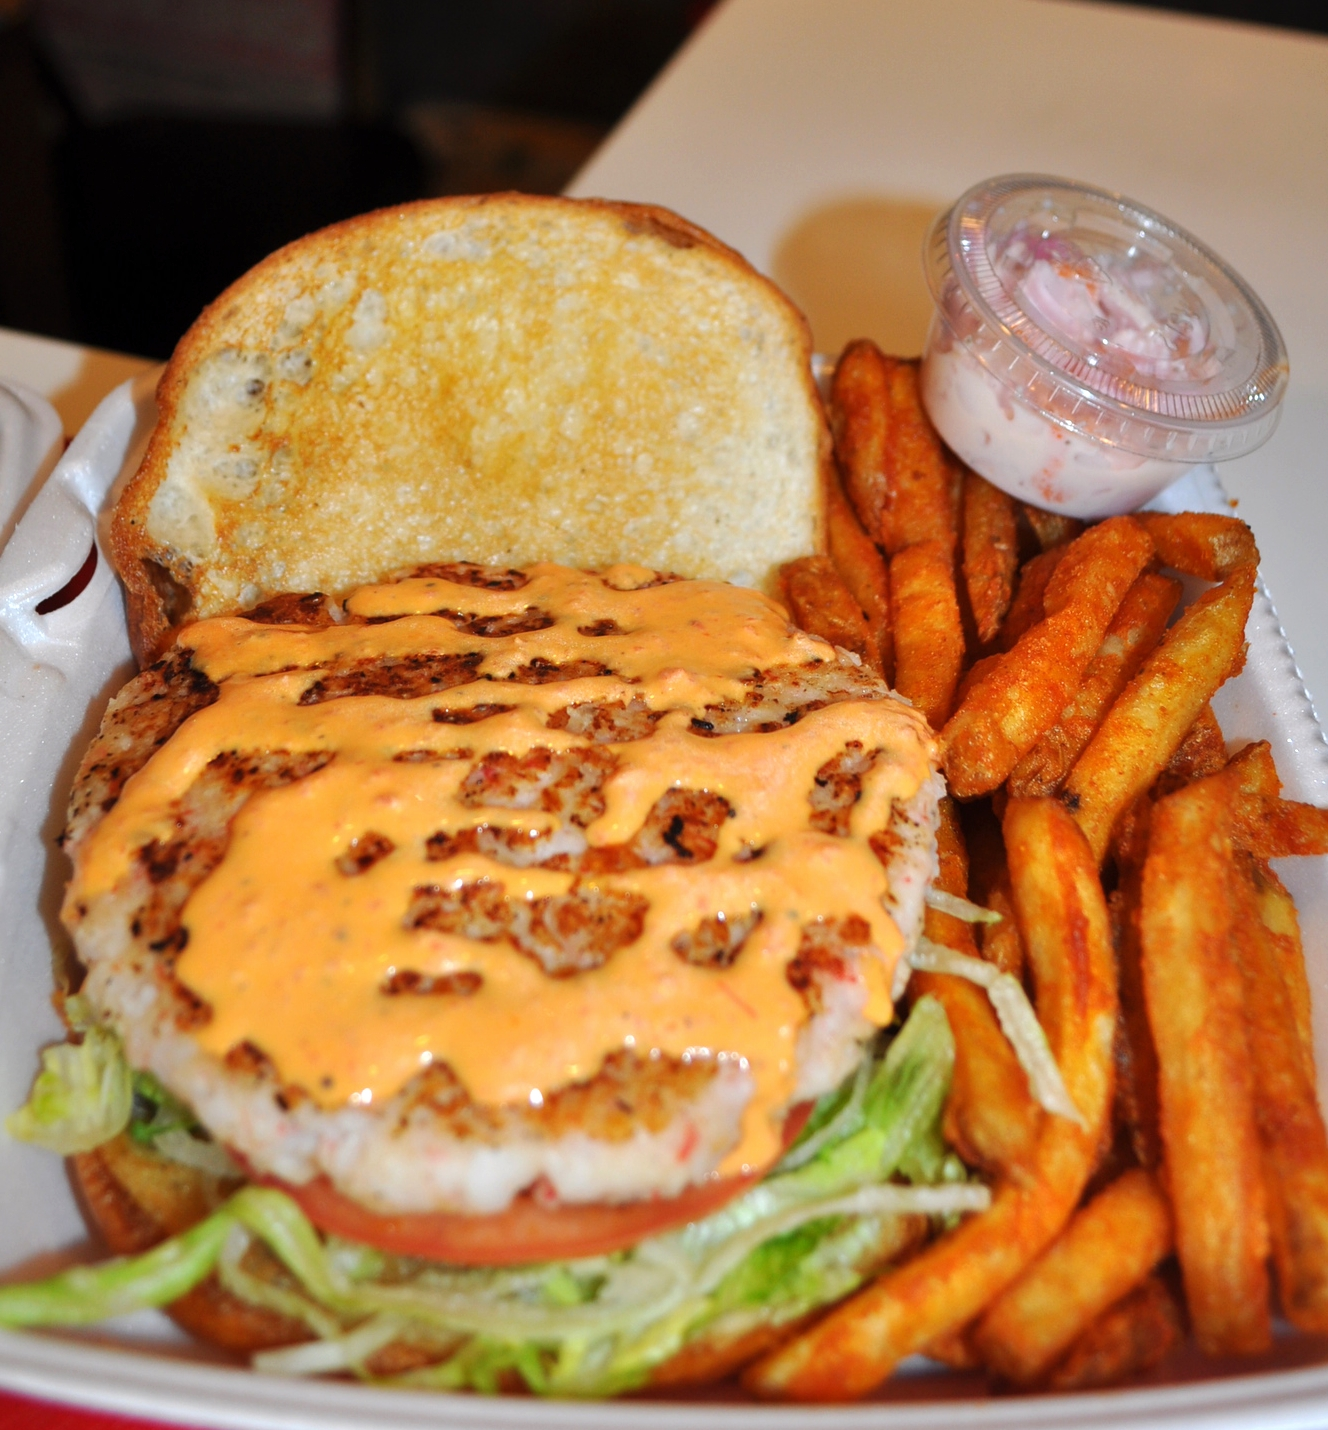 A shrimp and scallop burger at Jeff's Surf and Turf. (Jeff's Surf and Turf, 217 New York Ave., Huntington, 631-423-6300)  Long Islander News photo/ Danny Schrafel